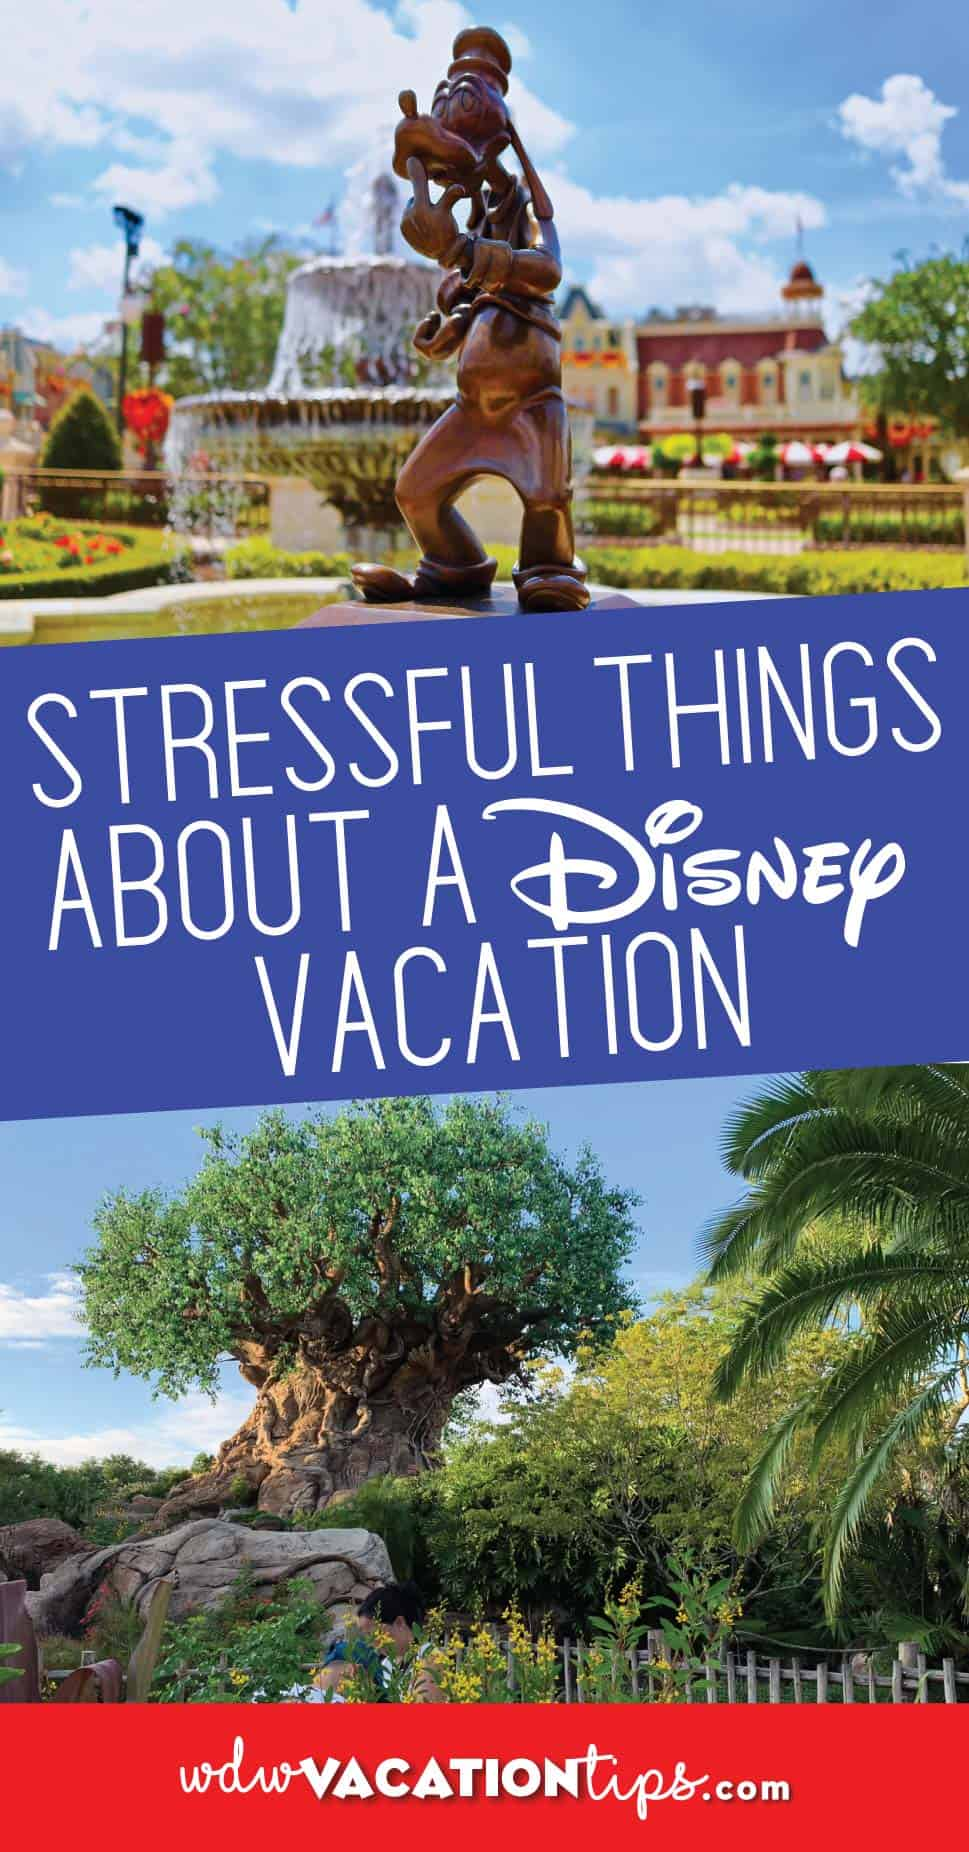 Stressful Things about Disney Vacation